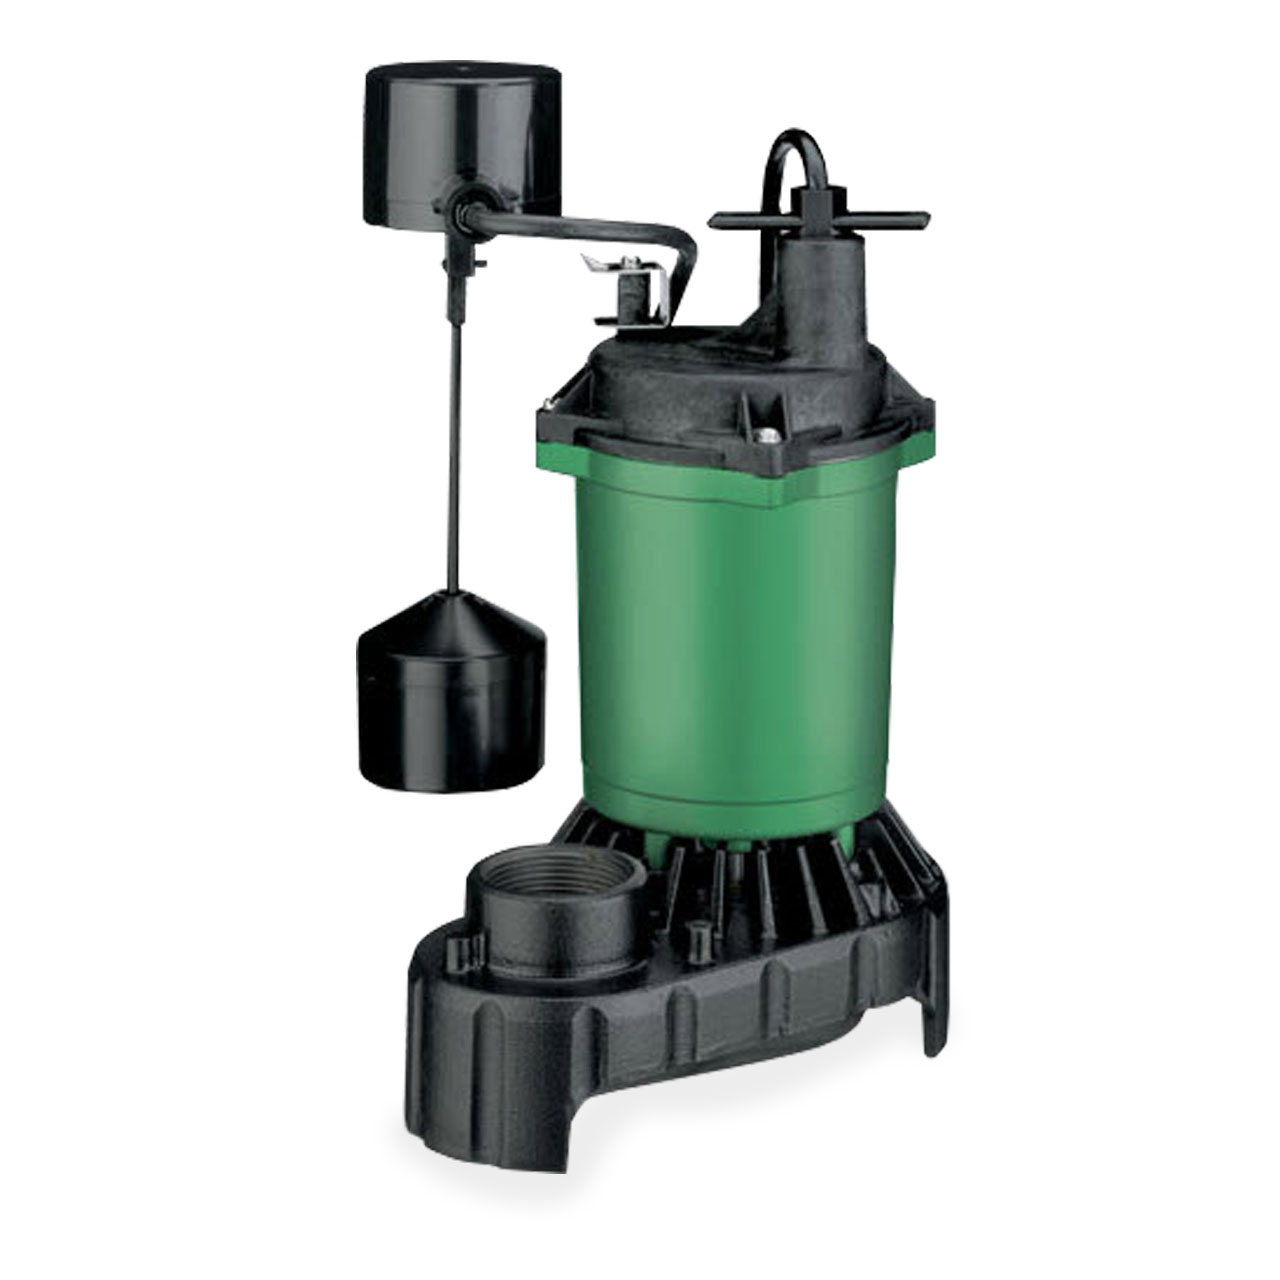 Hydromatic Pump Hydromatic Submersible Sump Pump Hs50pv1